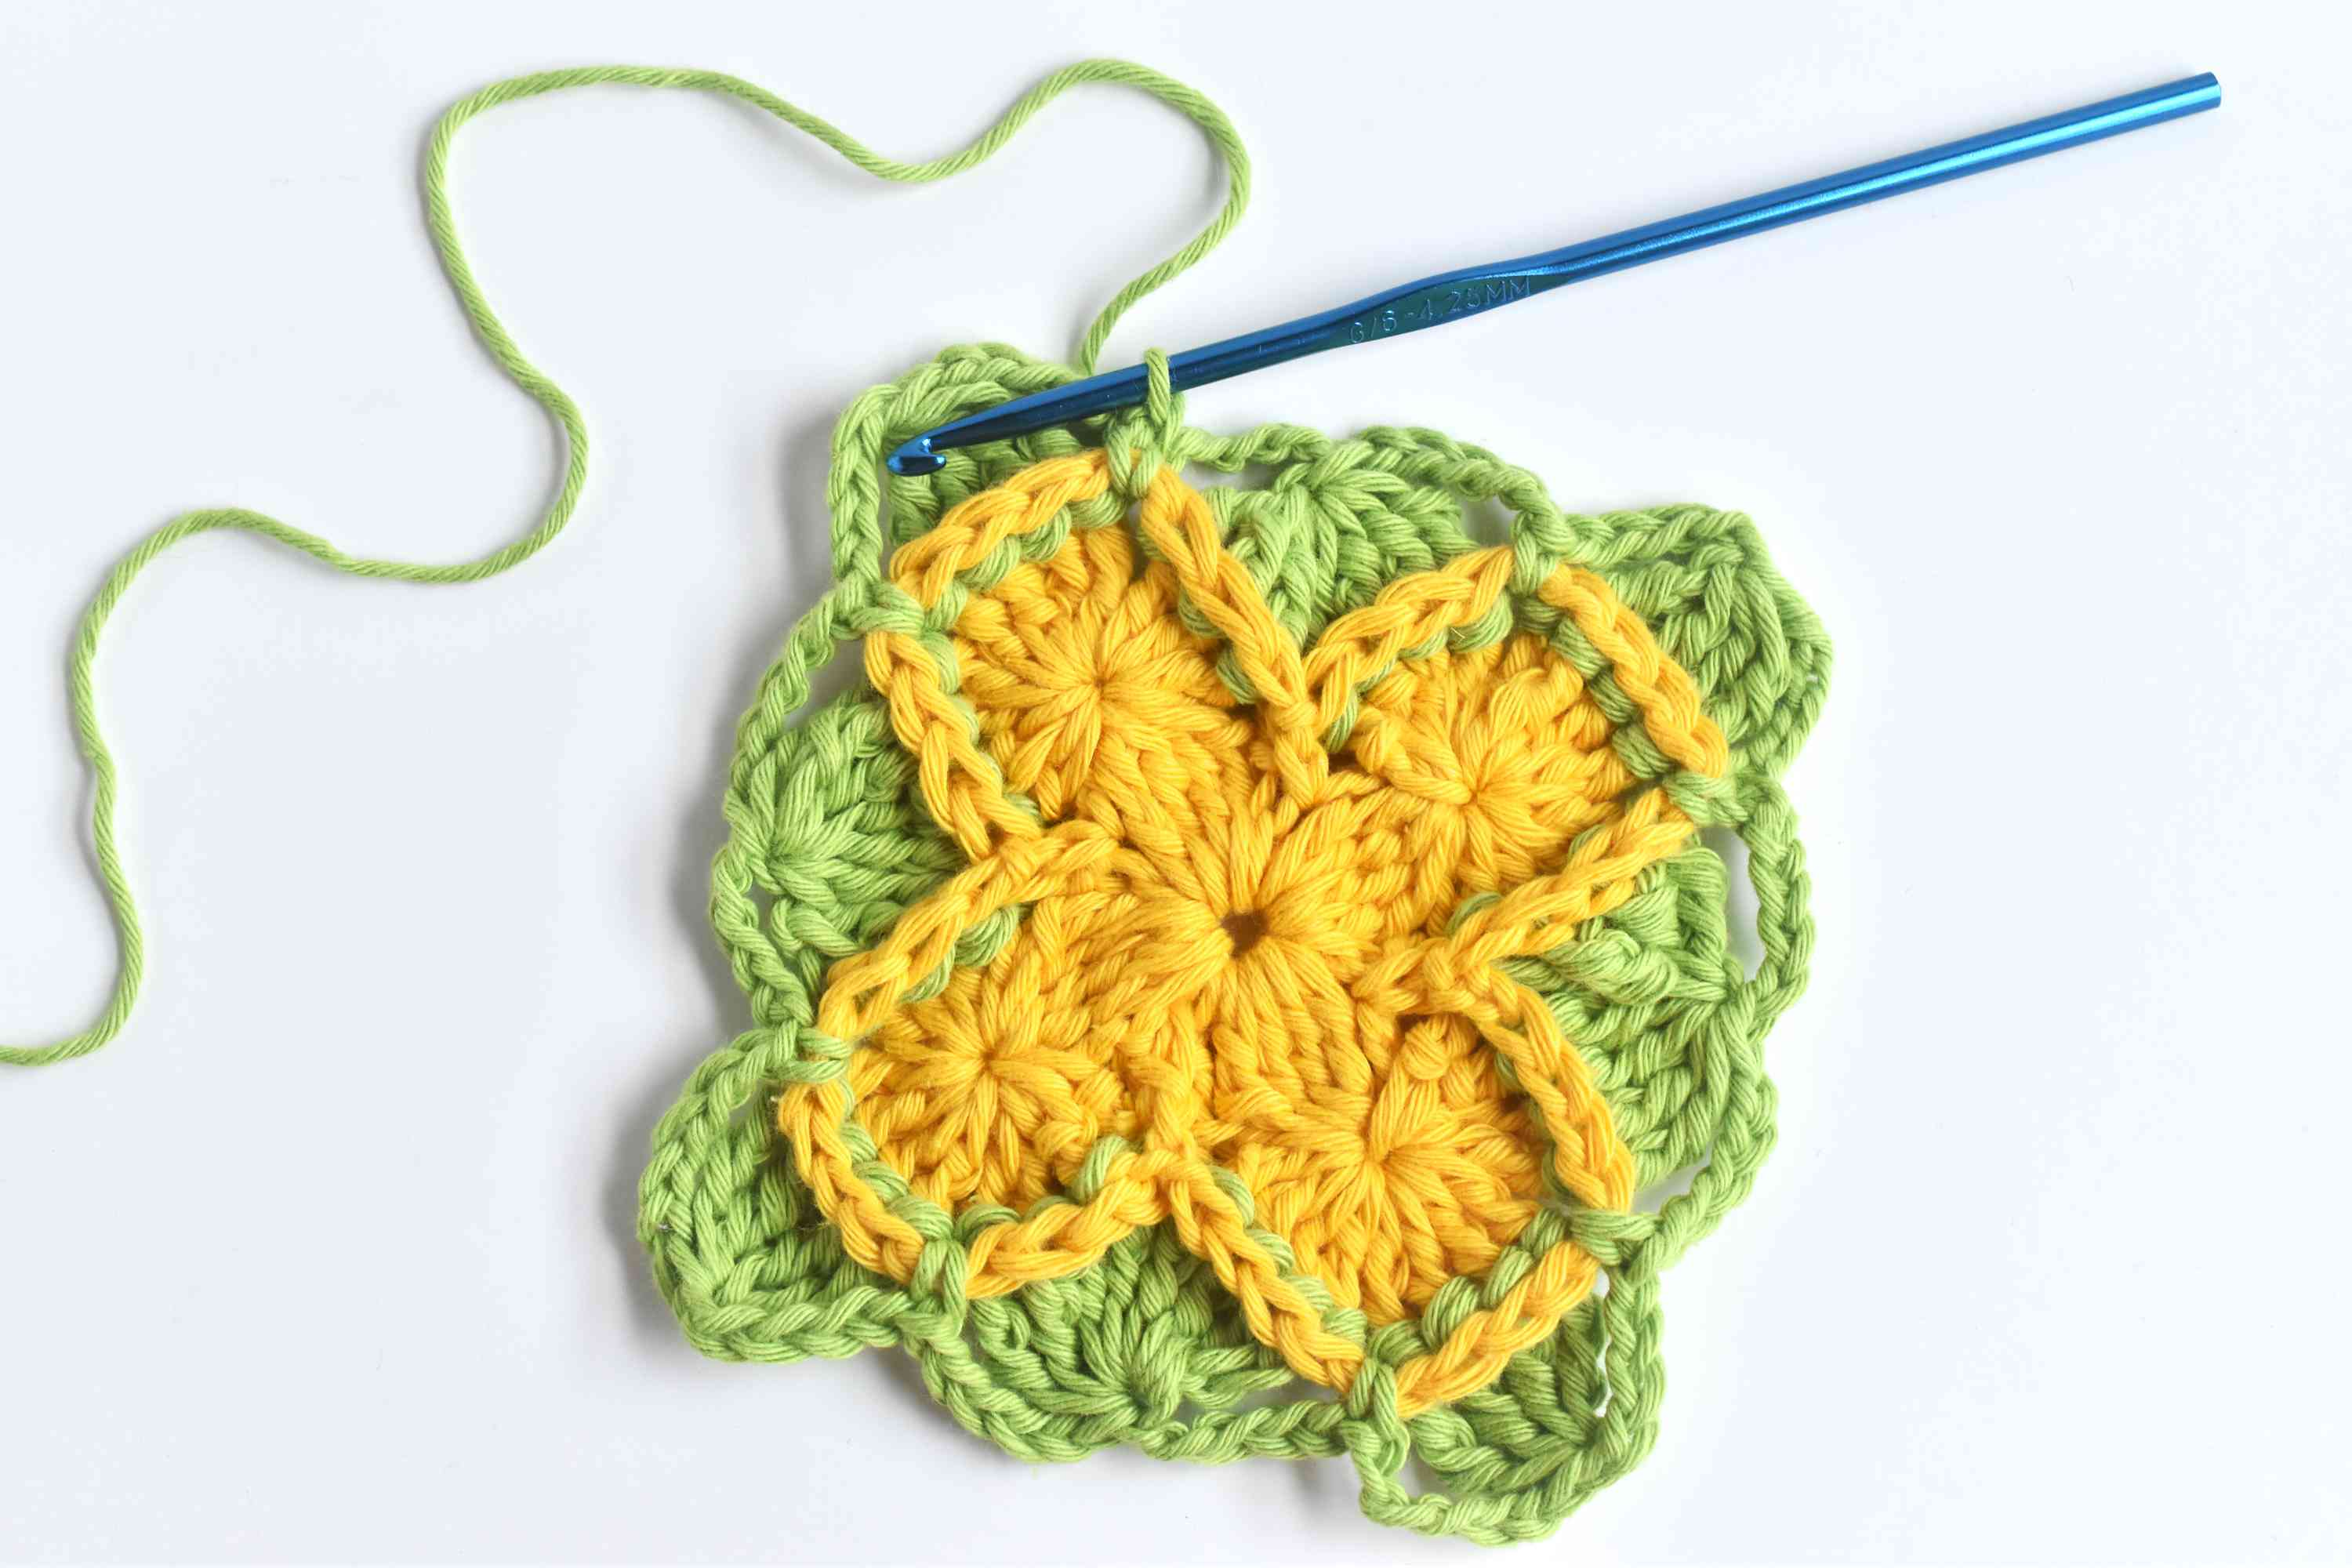 Repeat to Complete Round 3 of Bavarian Crochet